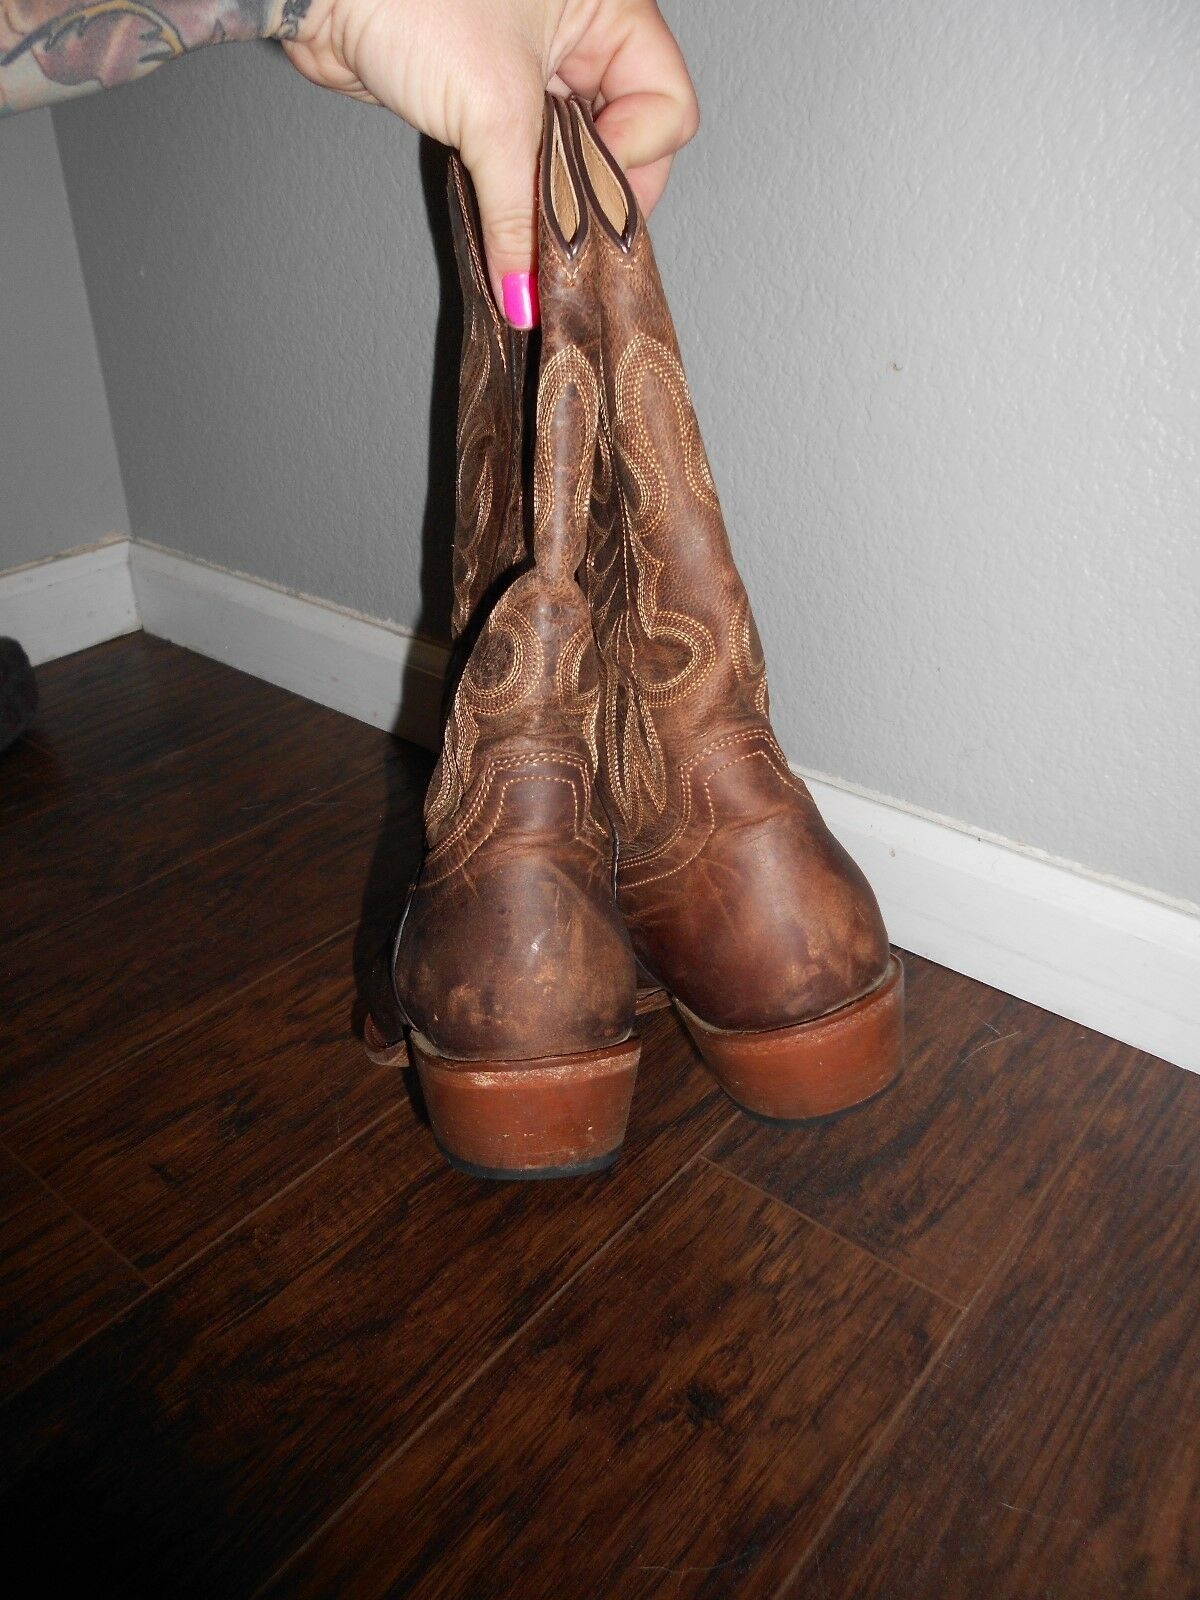 WOMENS SHYANNE   WESTERN LEATHER LEATHER LEATHER BOOTS  COWGIRL SNIP TOE SZ 9B ORG  249.99 020eb4